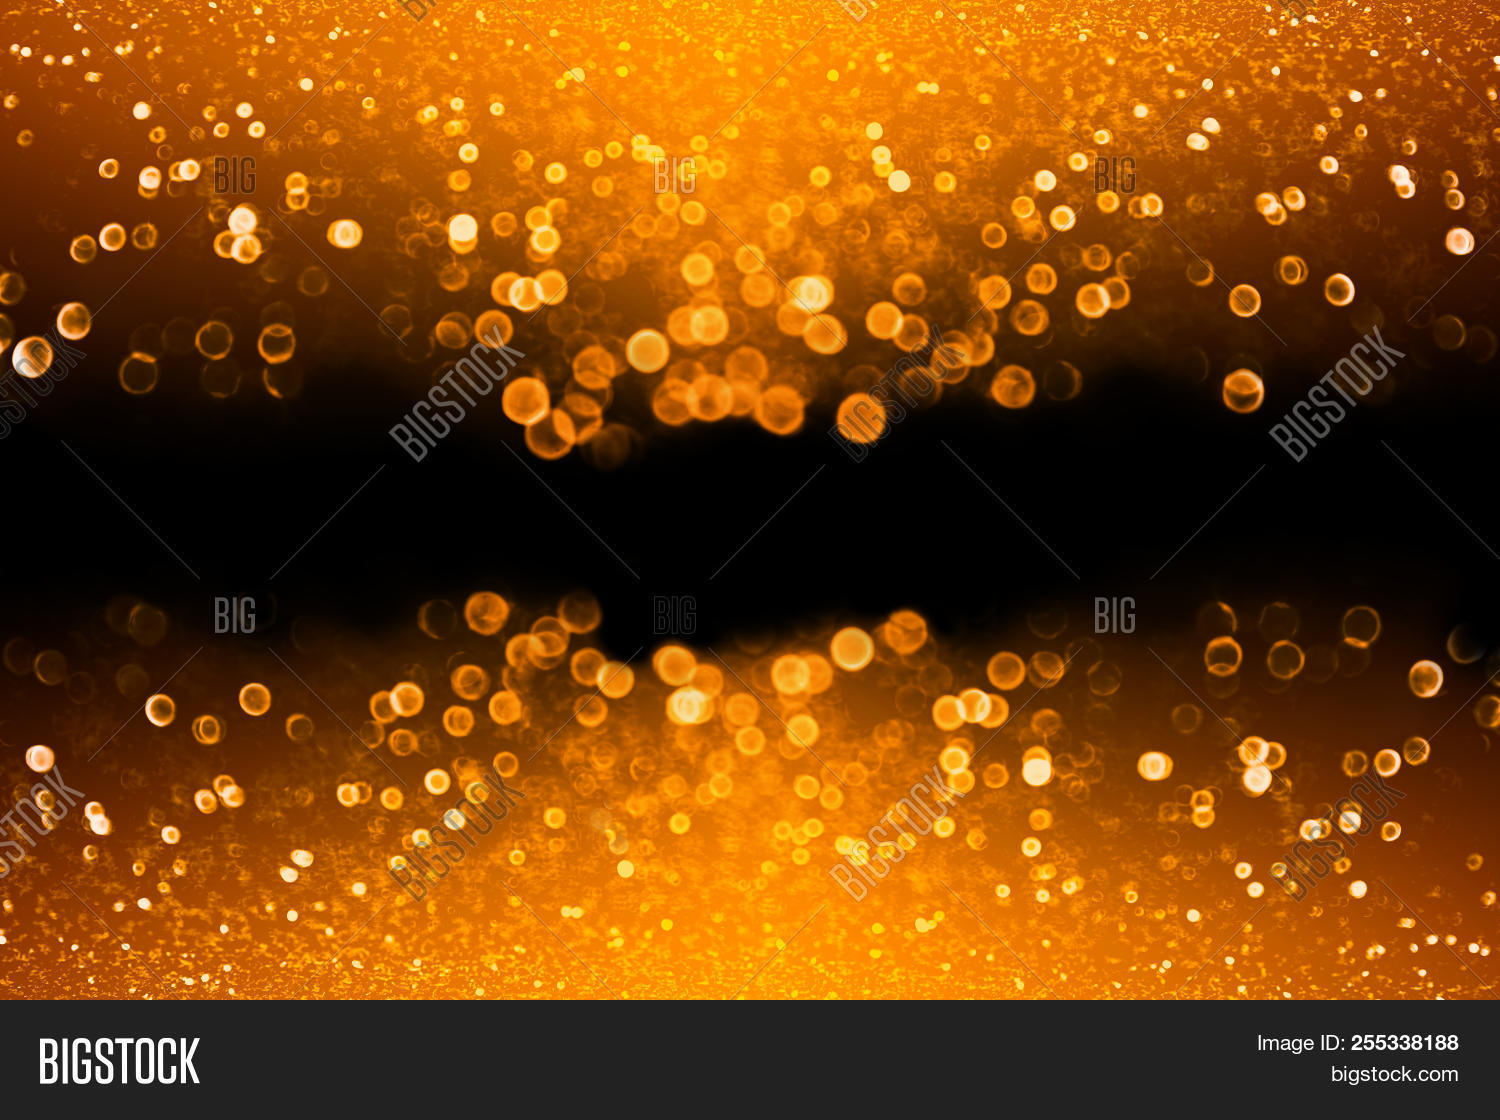 Abstract Dark Orange Image Photo Free Trial Bigstock